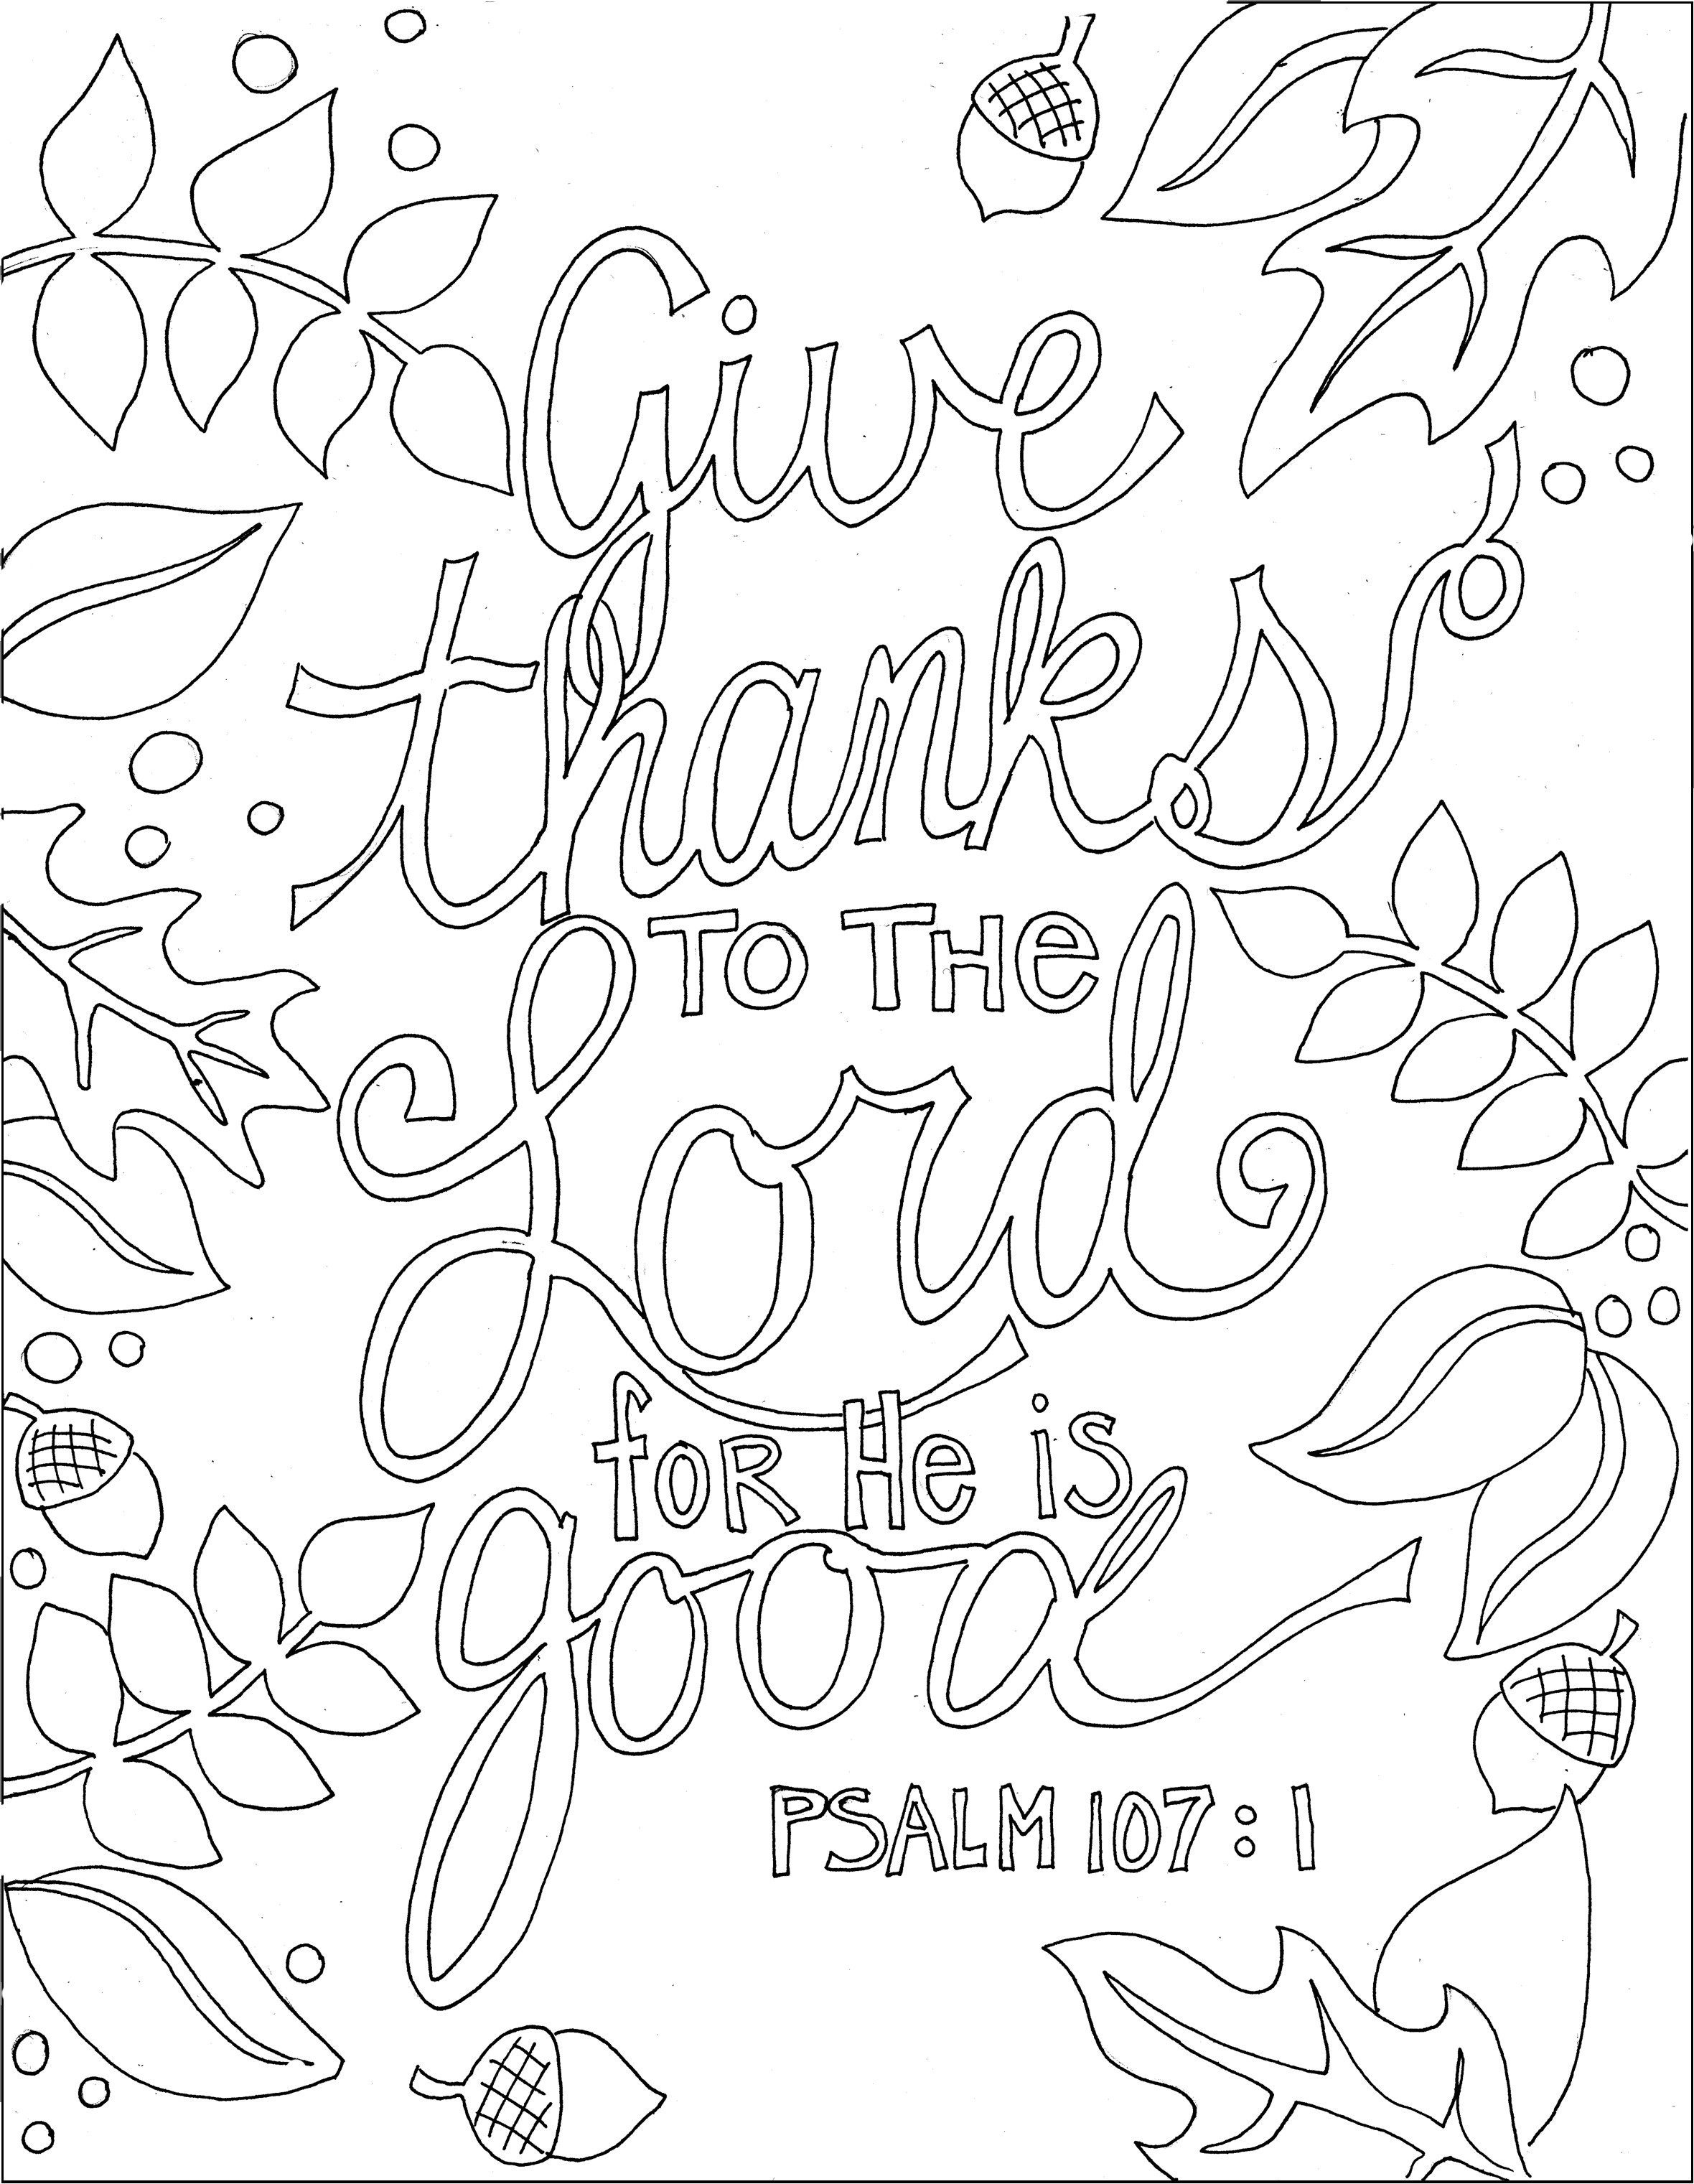 Best ideas about Spiritual Coloring Pages For Adults . Save or Pin 50 Adult Bible Coloring Pages 17 Best Ideas About Now.